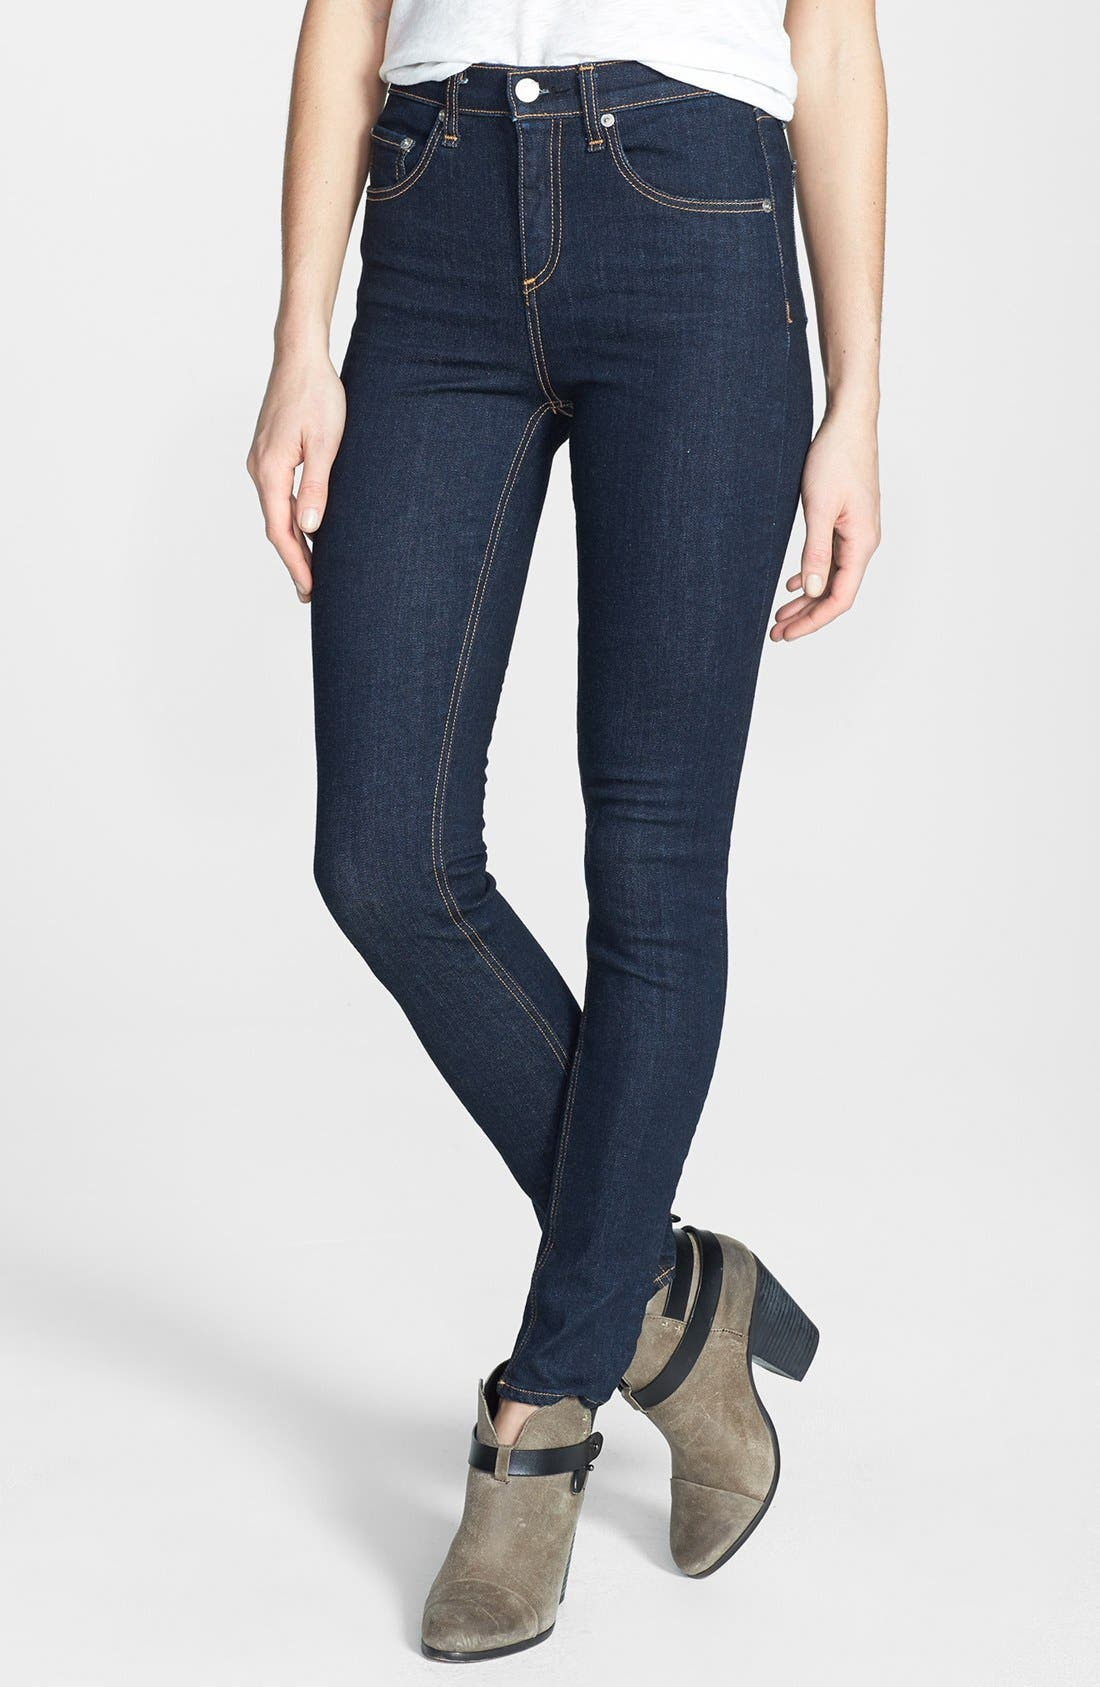 Alternate Image 1 Selected - rag & bone/JEAN High Rise Skinny Jeans (Heritage)